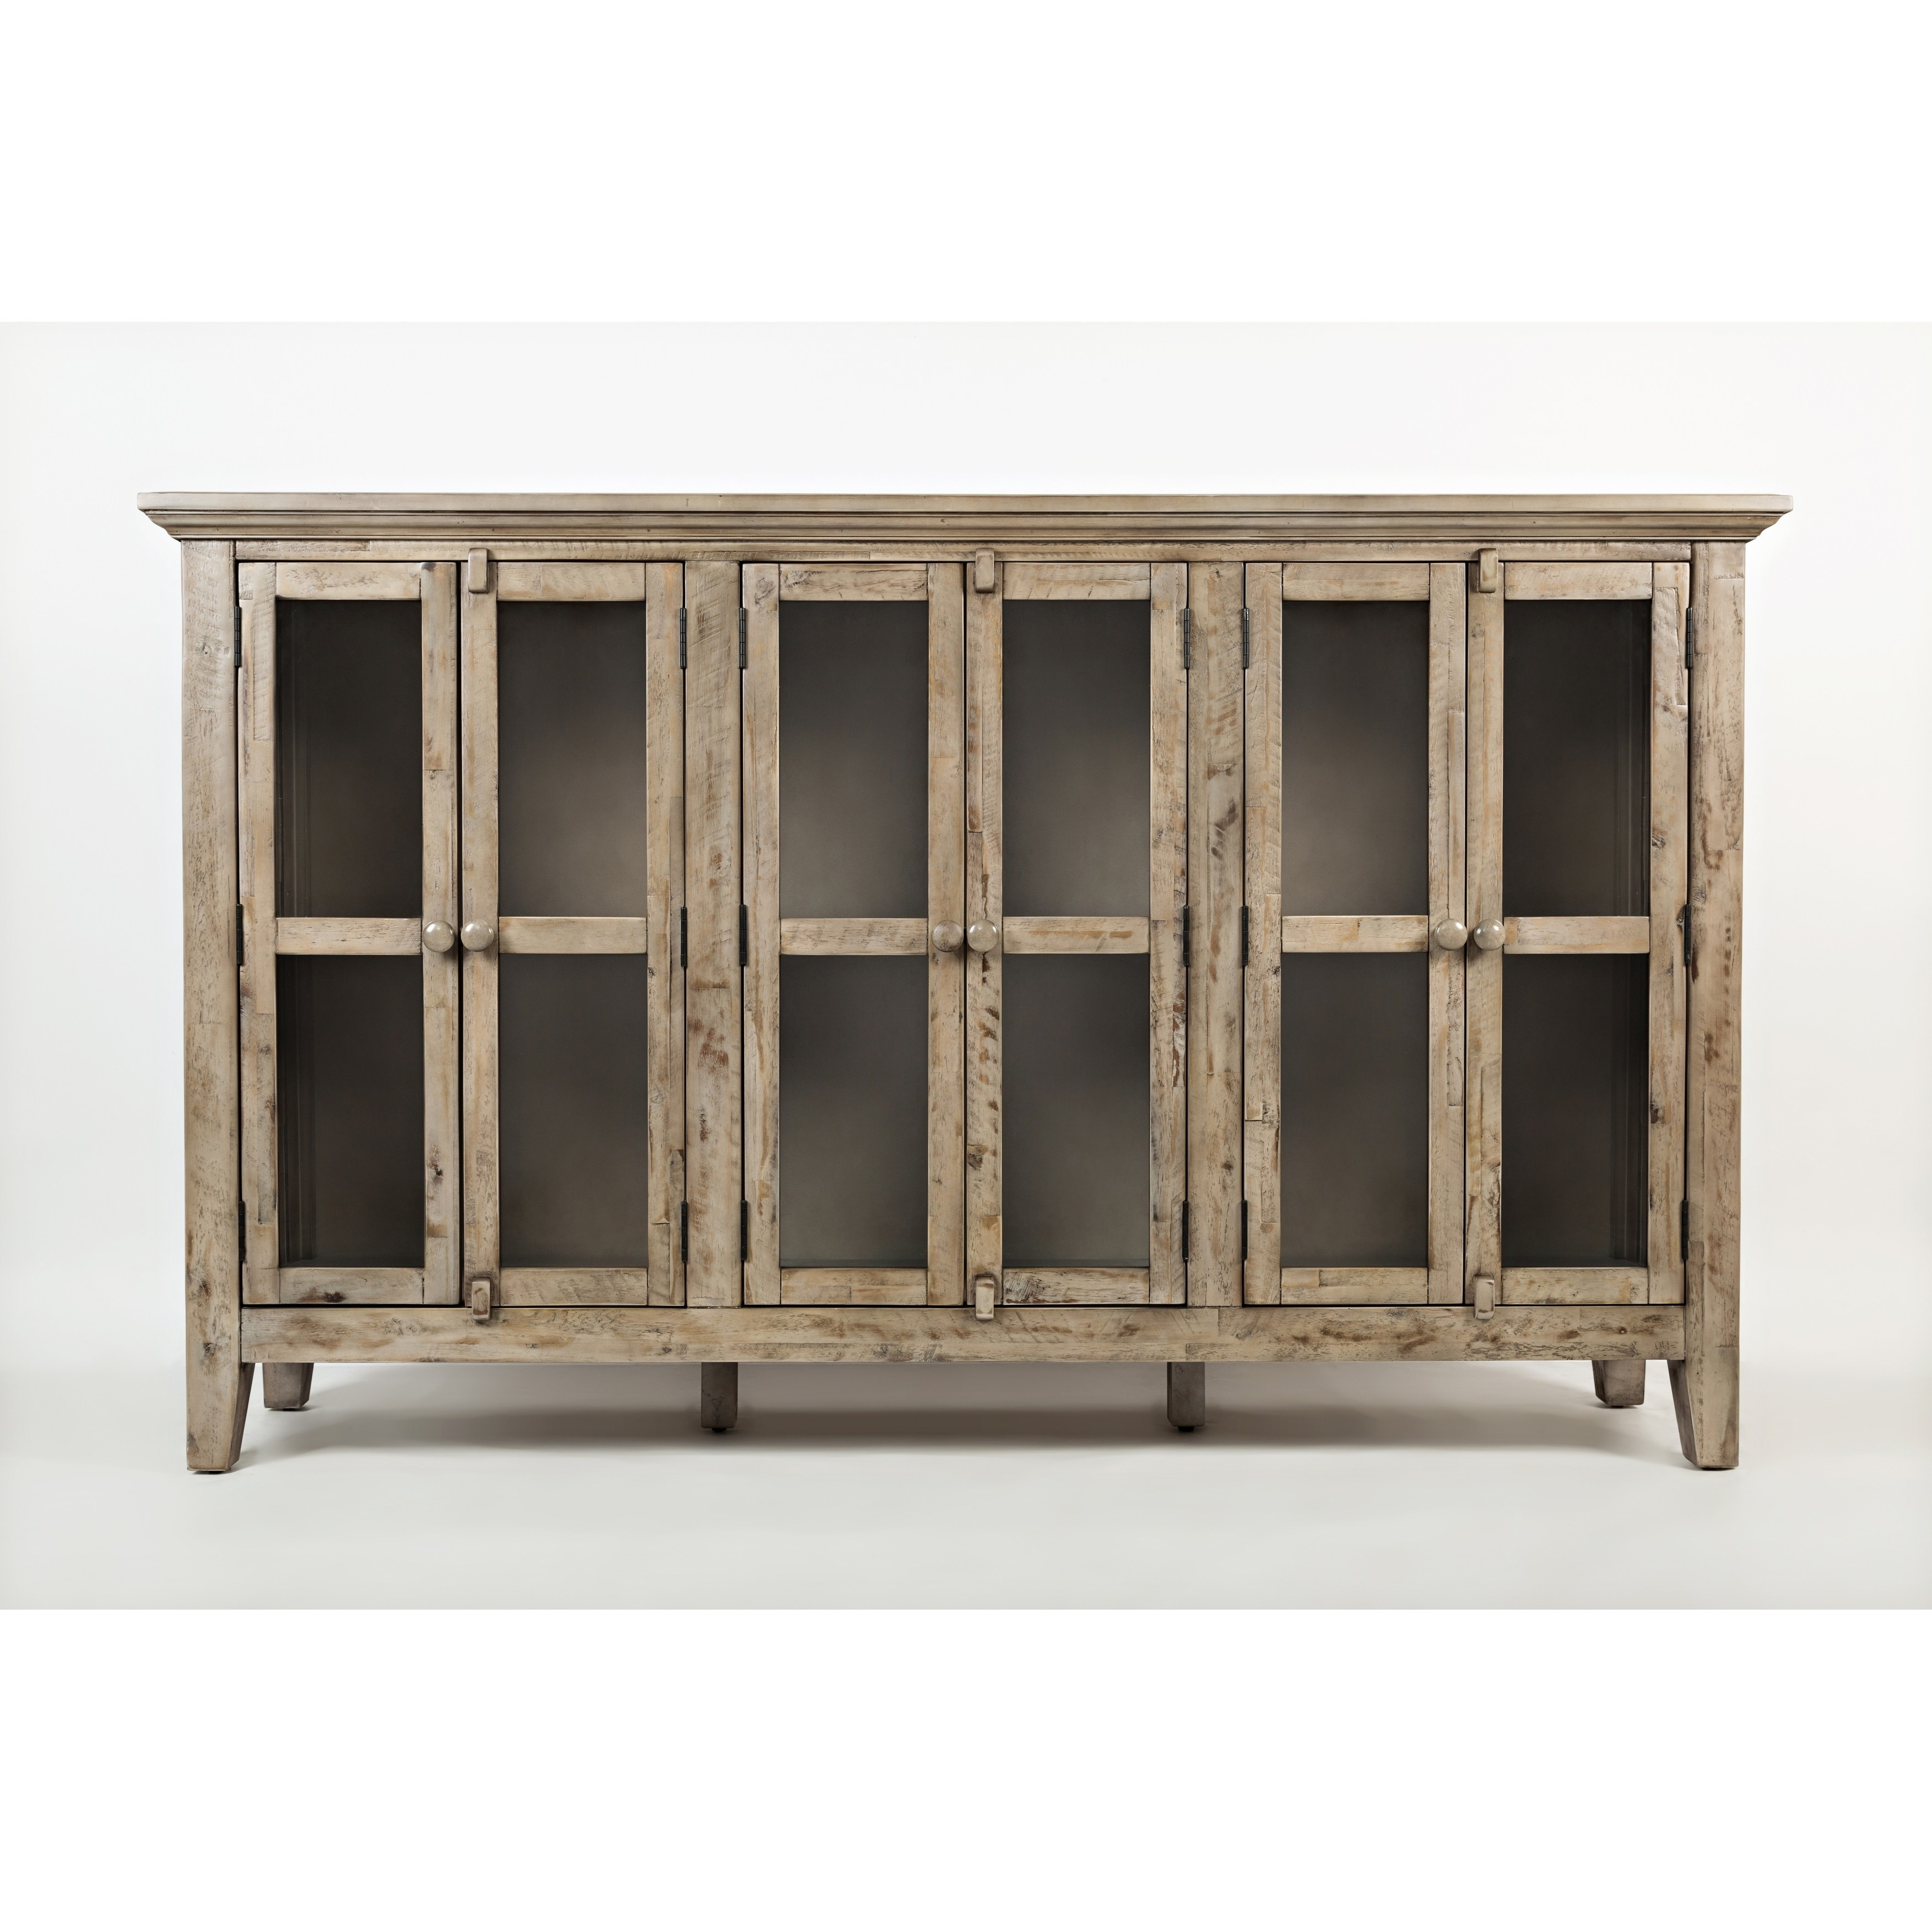 wooden accent cabinet with glass doors weathered gray table free shipping today decorative cabinets for living room home goods dressers tiffany look alike lamps high top outdoor